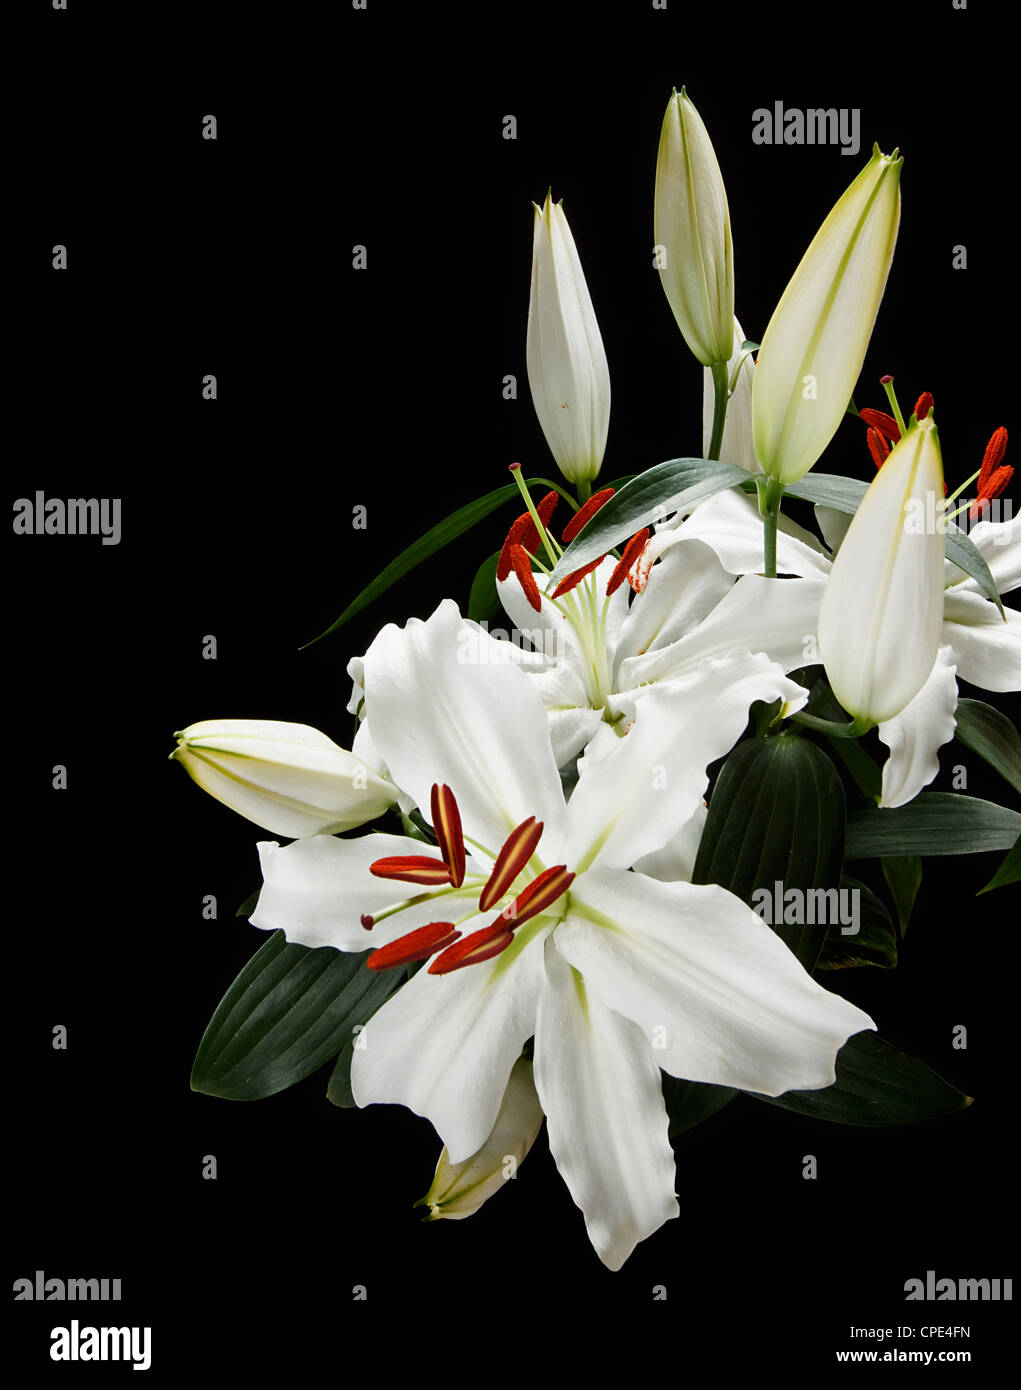 Bunch of white lilies popular at weddings and funerals, isolated on a black background - Stock Image